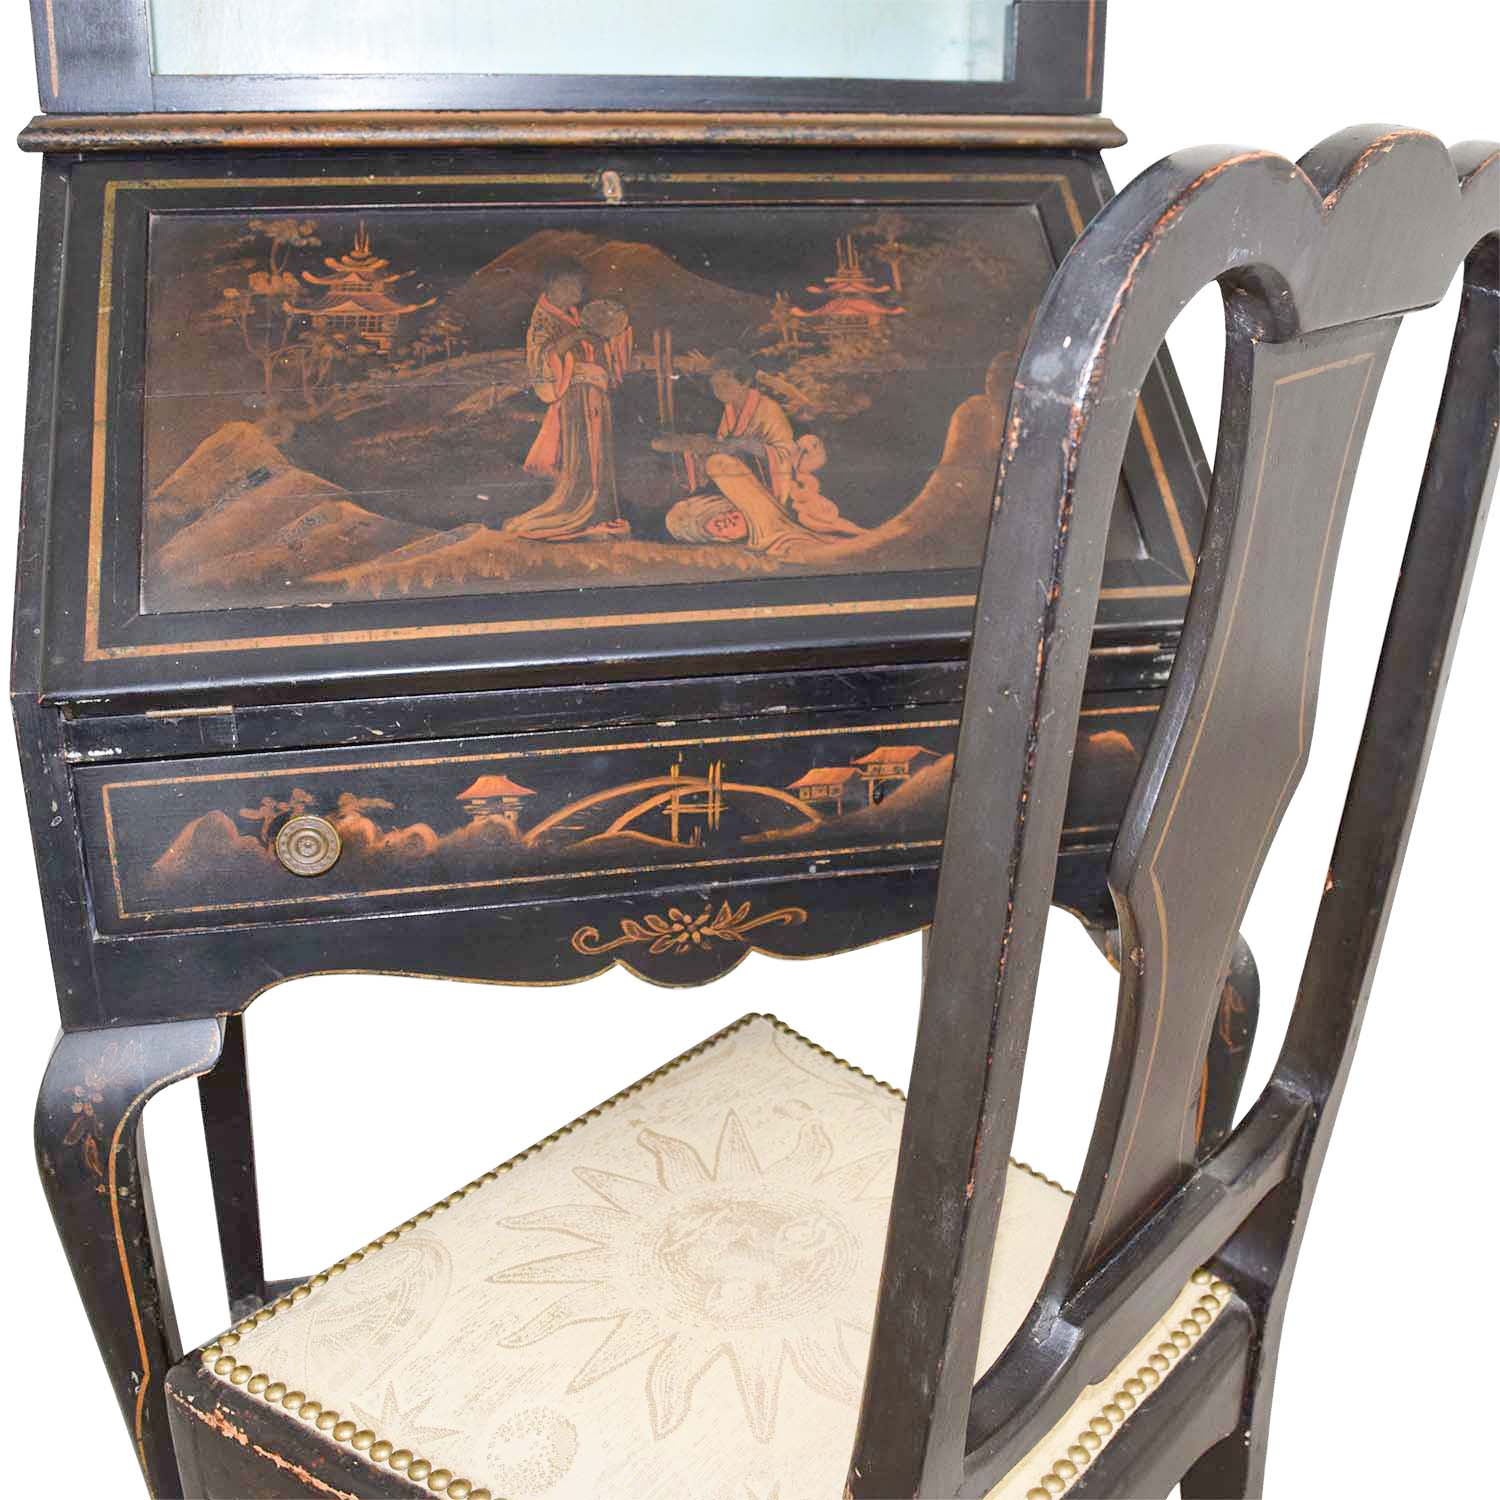 Brand-new 71% OFF - Antique Chinoiserie Secretary Desk with Chair / Storage HS06